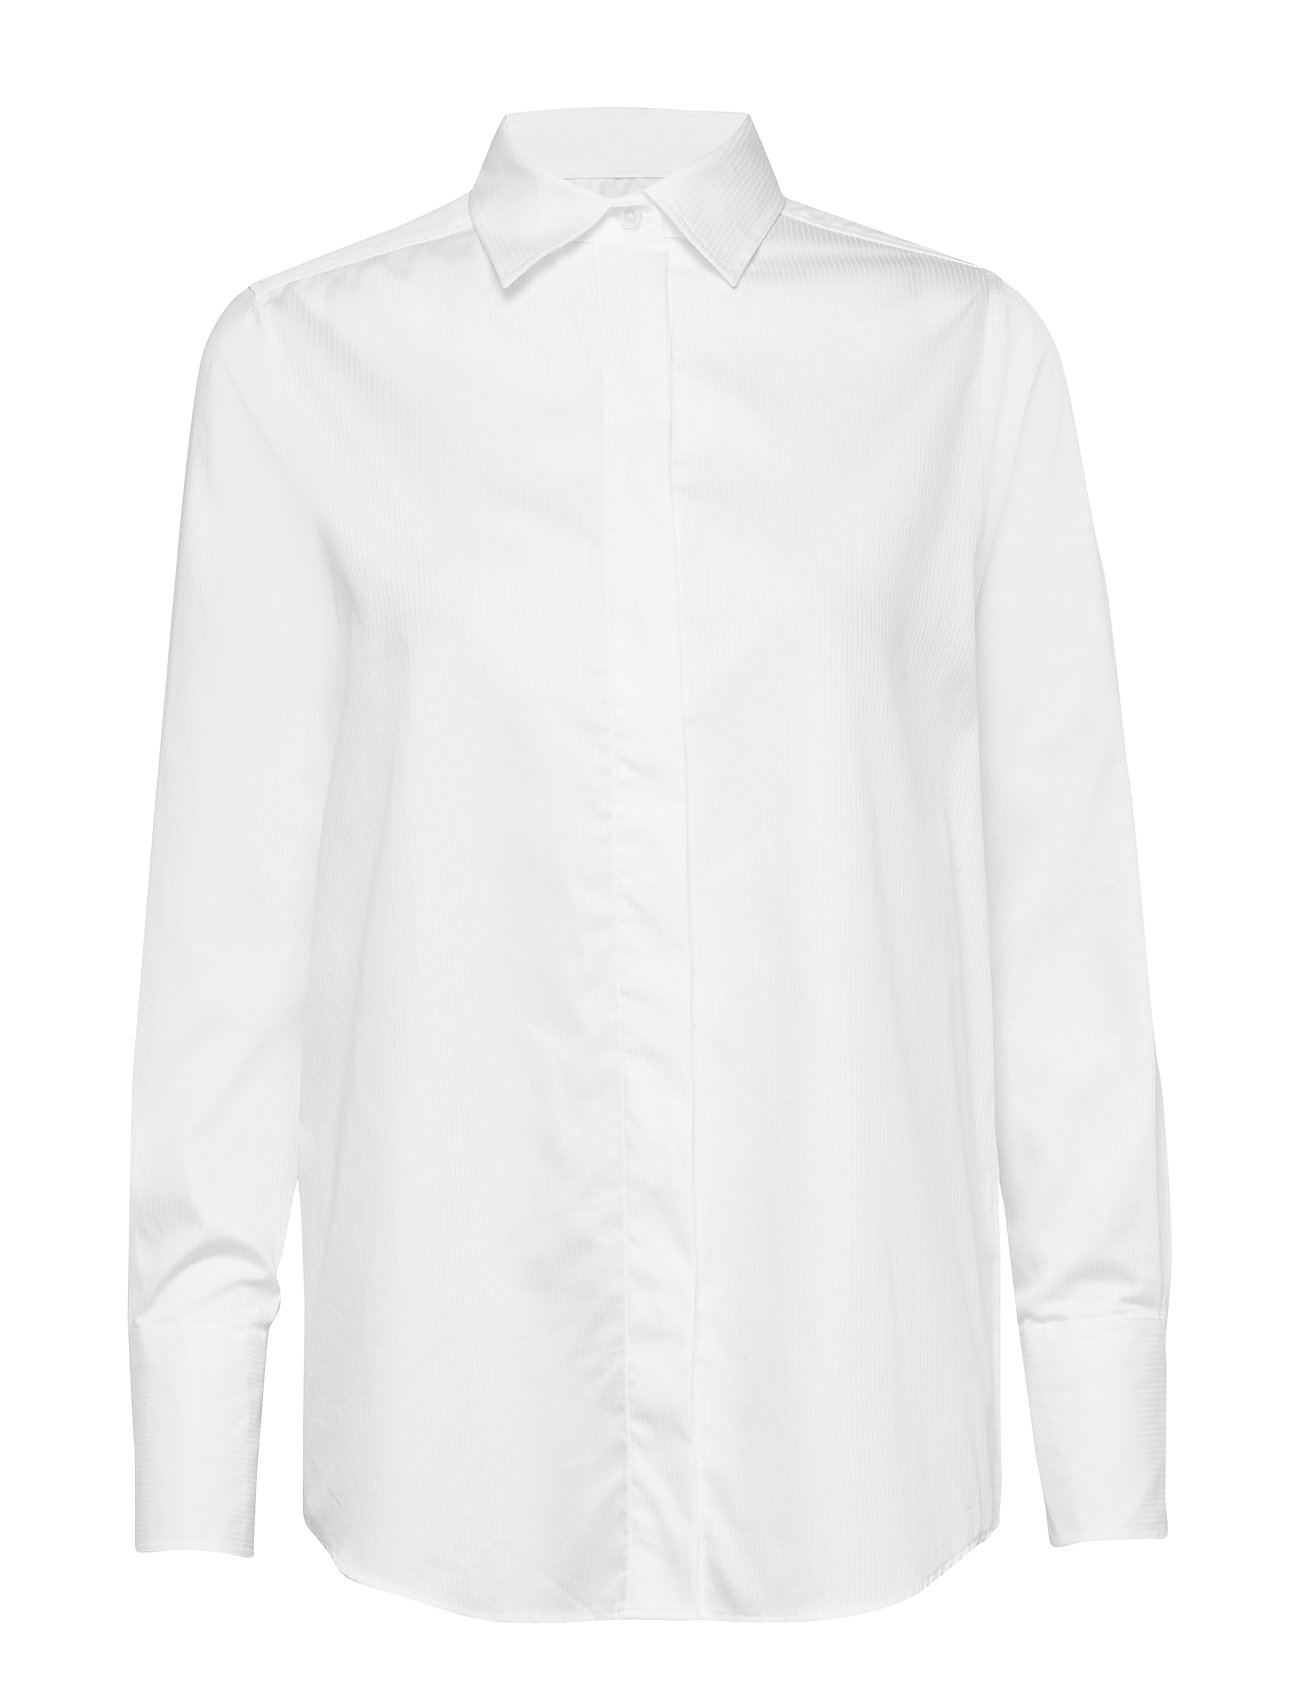 Lexington Clothing Misha Shirt - WHITE